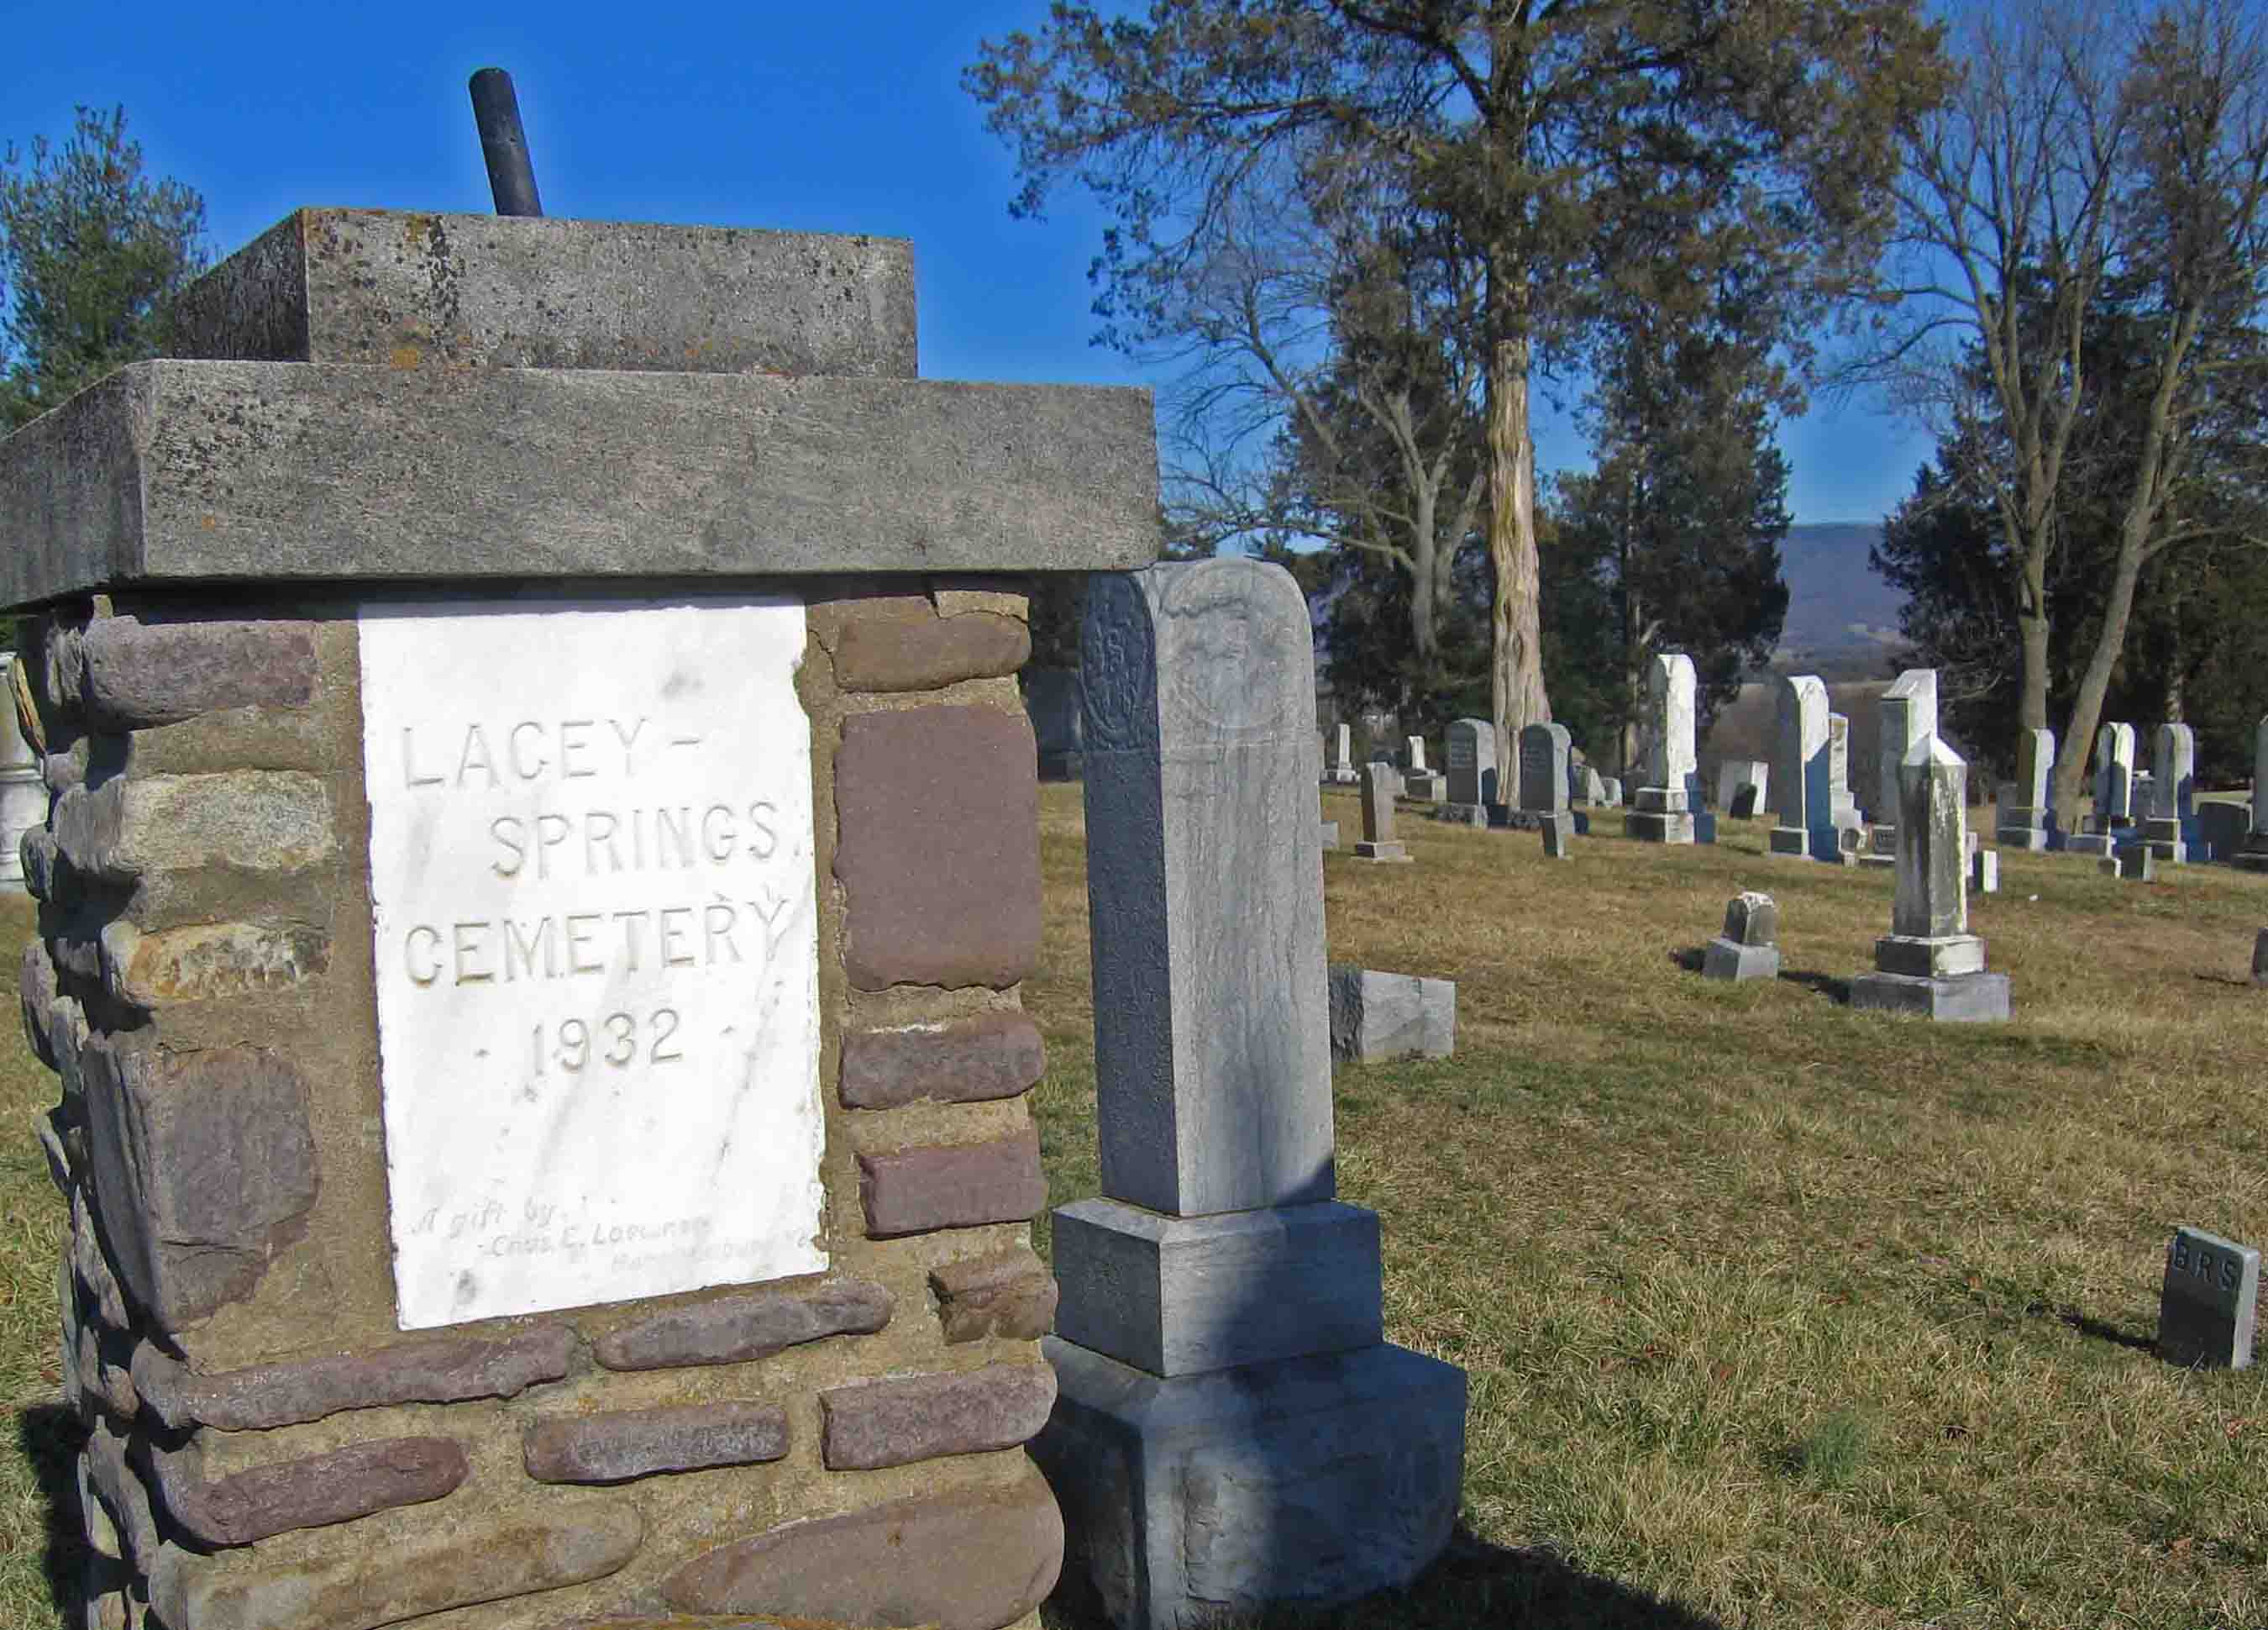 Lacey Springs Cemetery